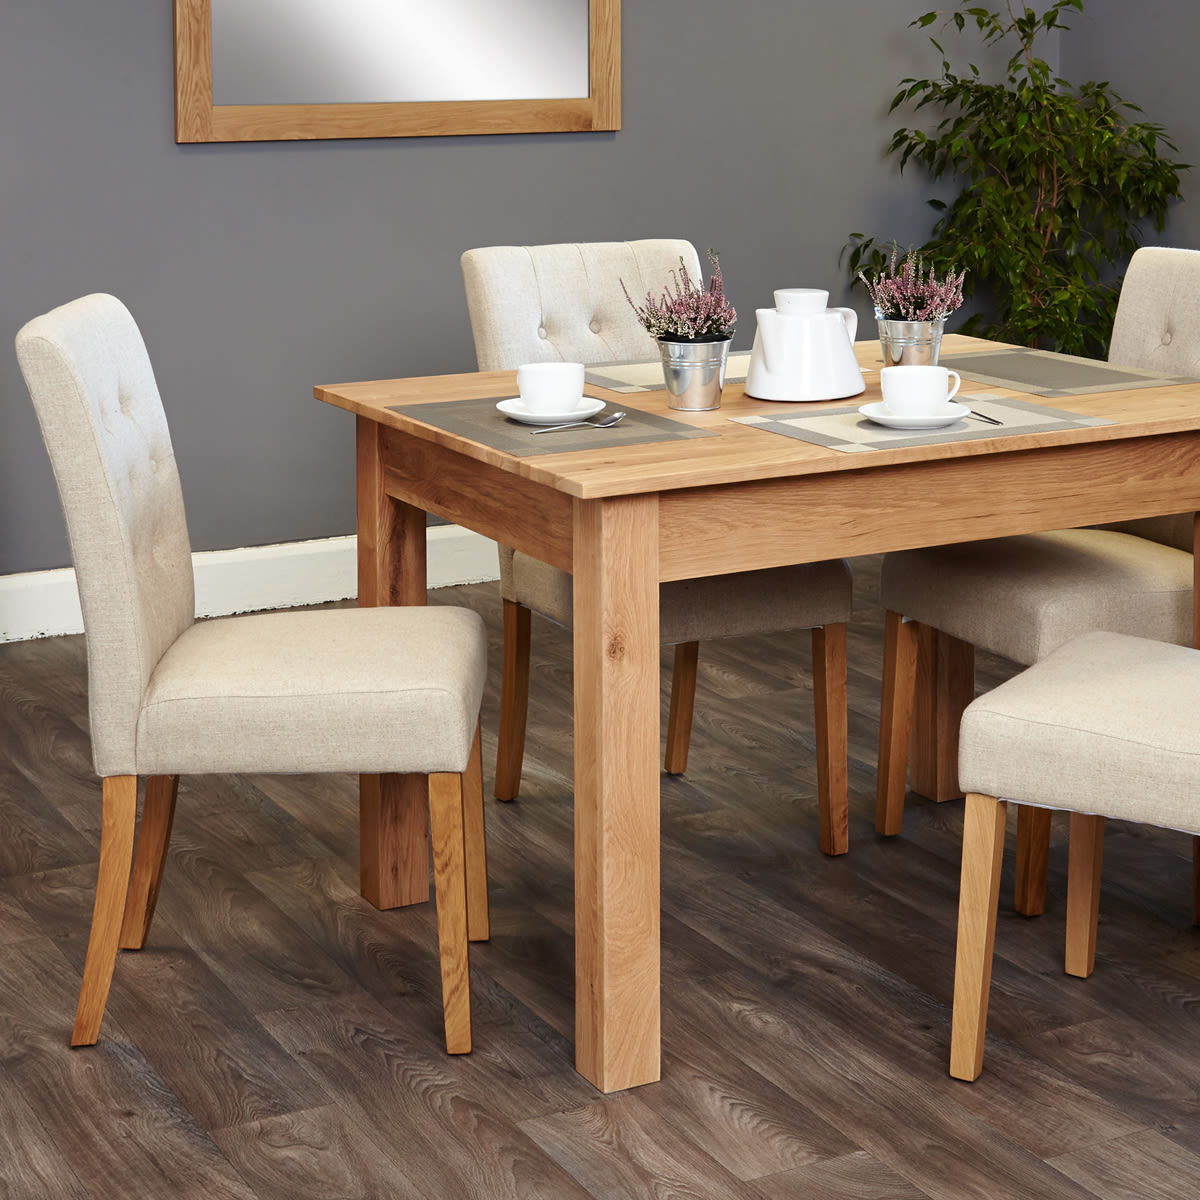 Mobel Solid Oak Dining Room Furniture Small Modern Dining: Mobel Oak Four Seat Table And Cream Chairs Was £759.00 Now